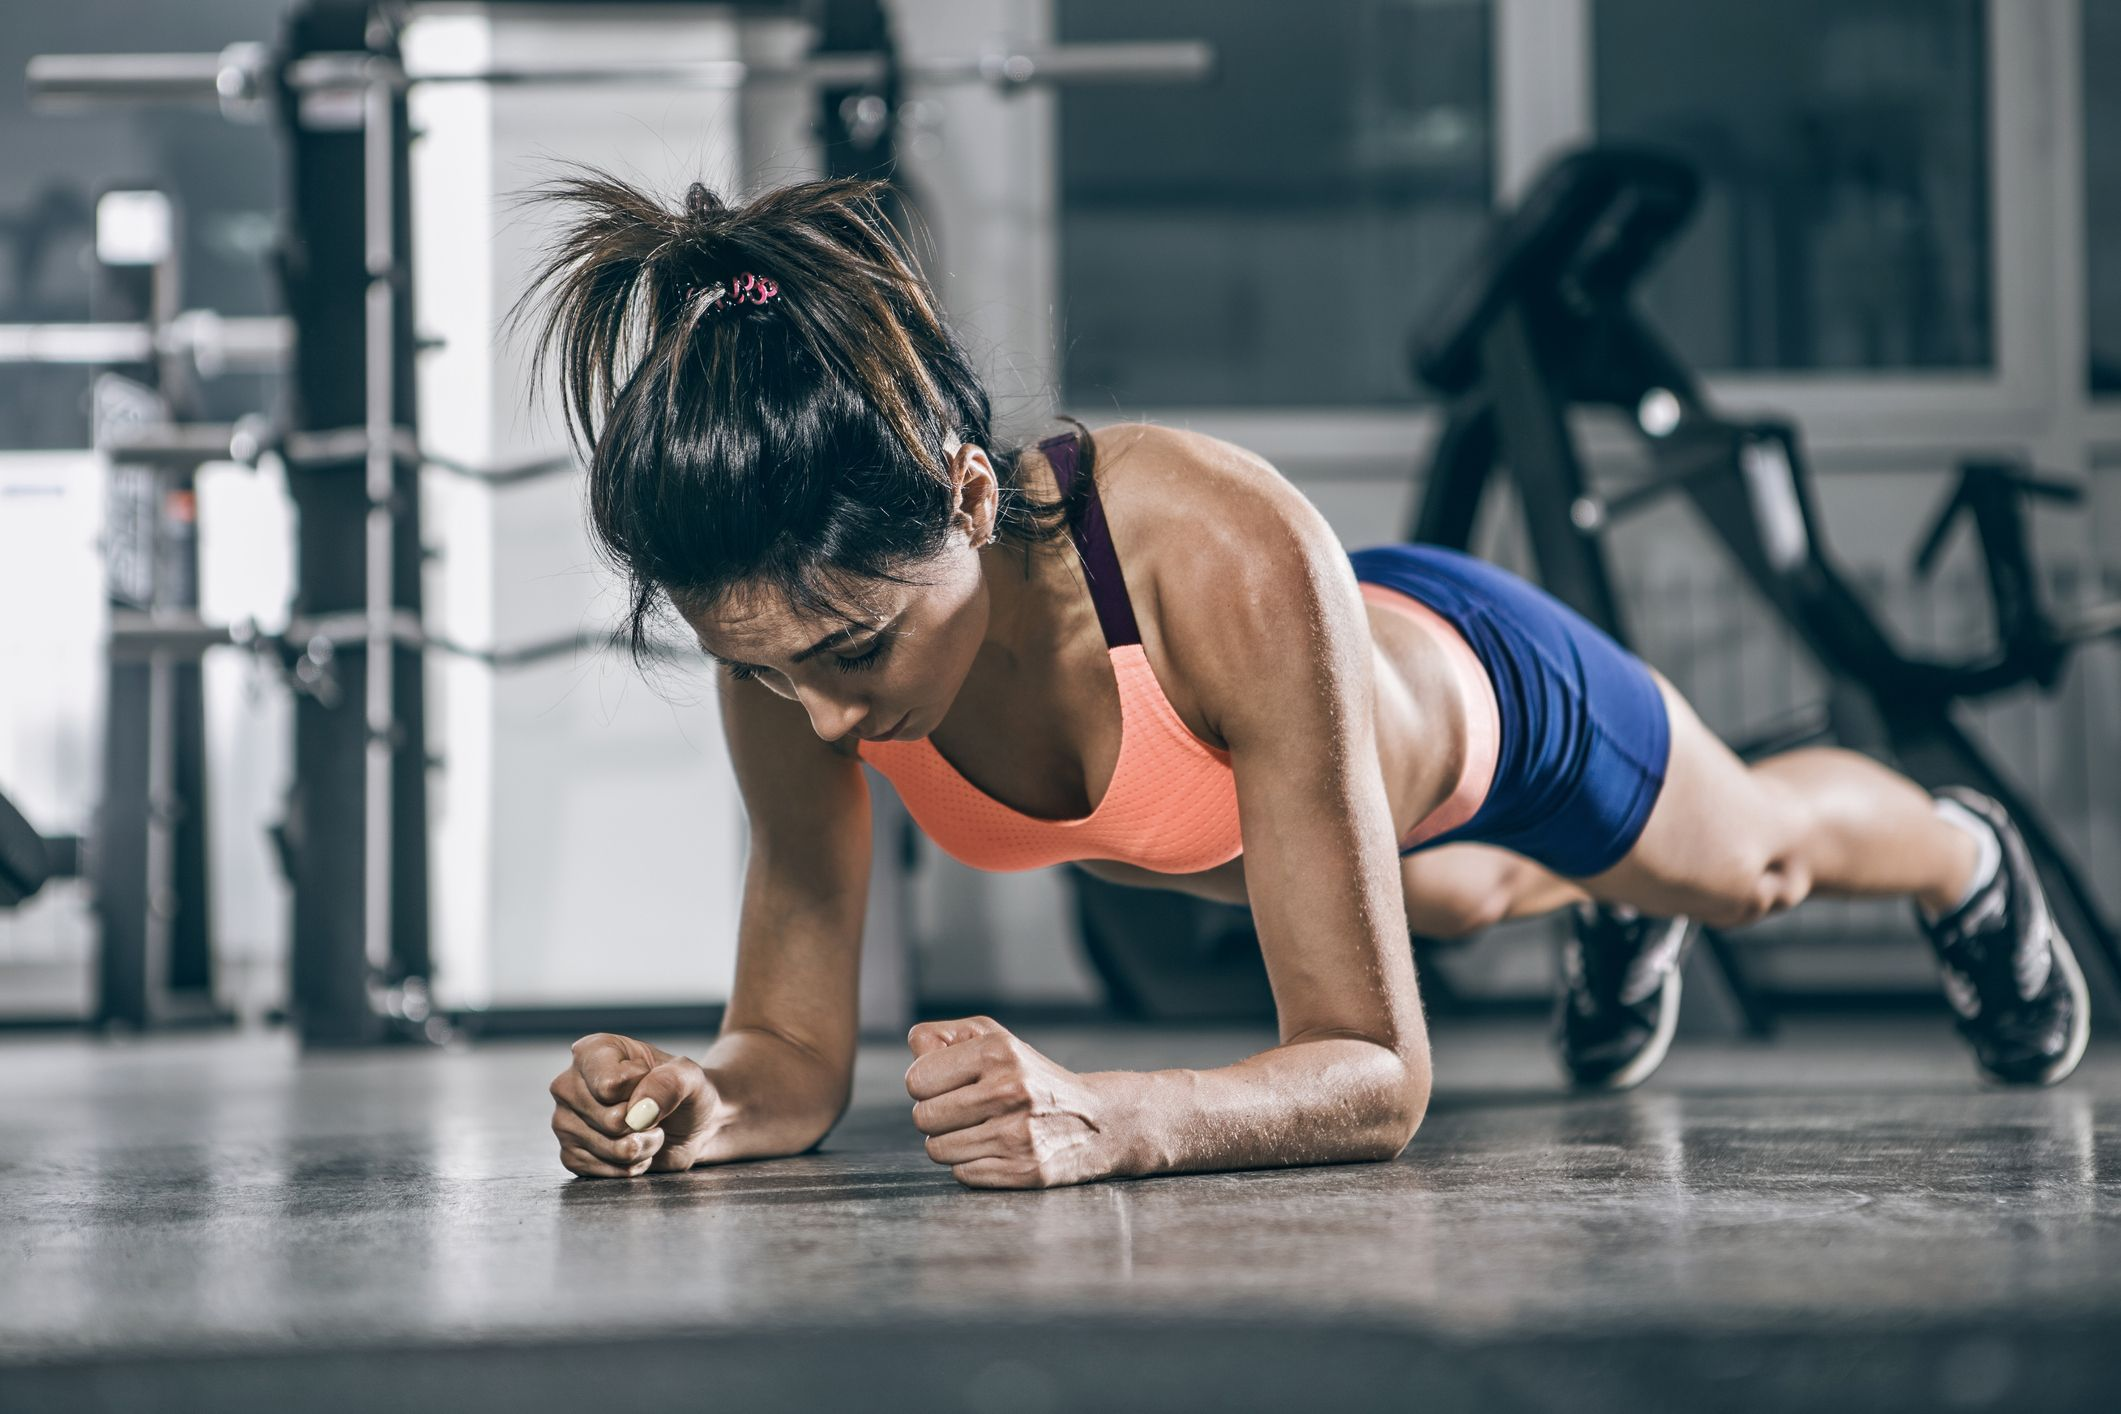 Bodyweight exercises for runners no equipment workout